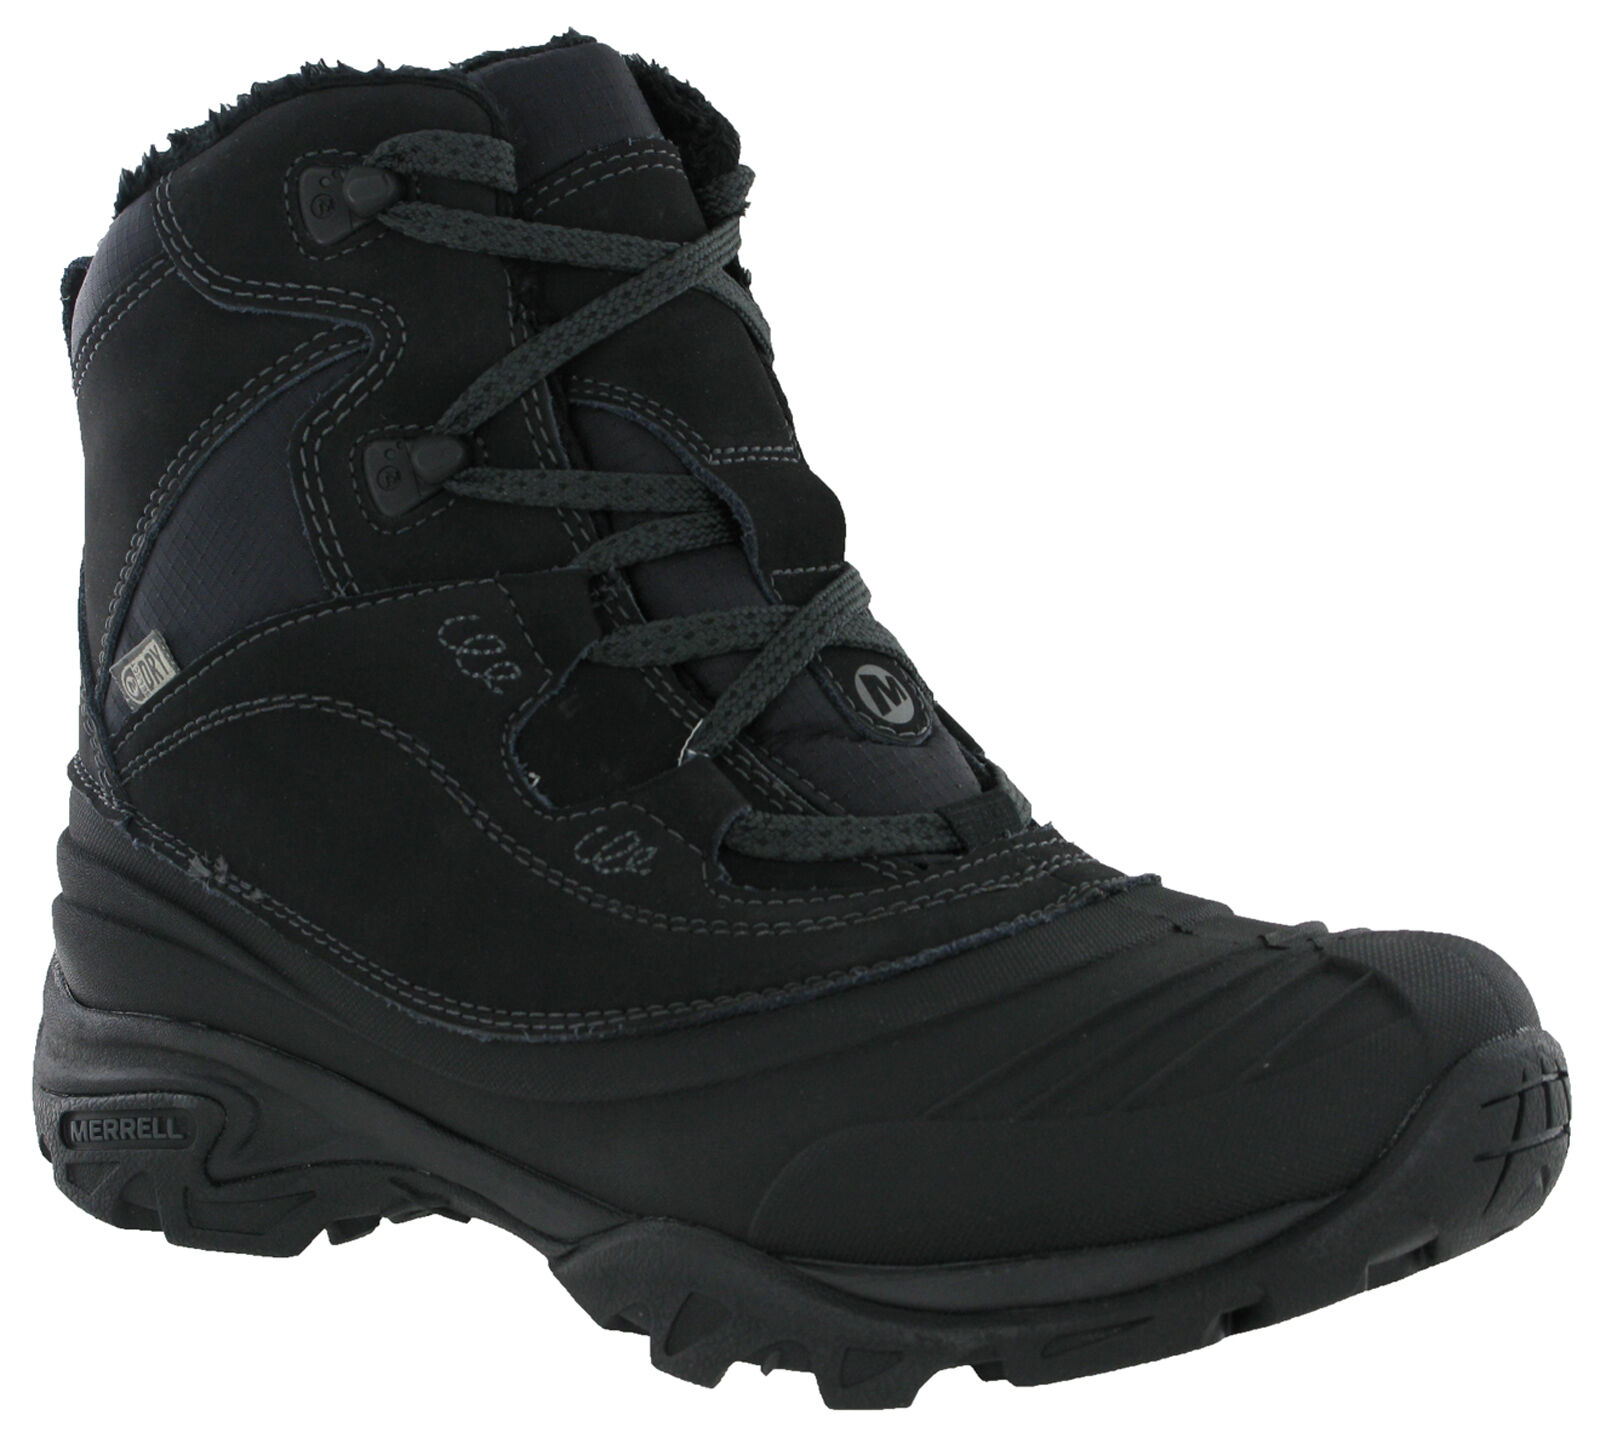 Merrell Snowbound Mid Waterproof Waterproof Mid Stiefel Walking Hiking Fur Lined Lace Damenschuhe 35bb60